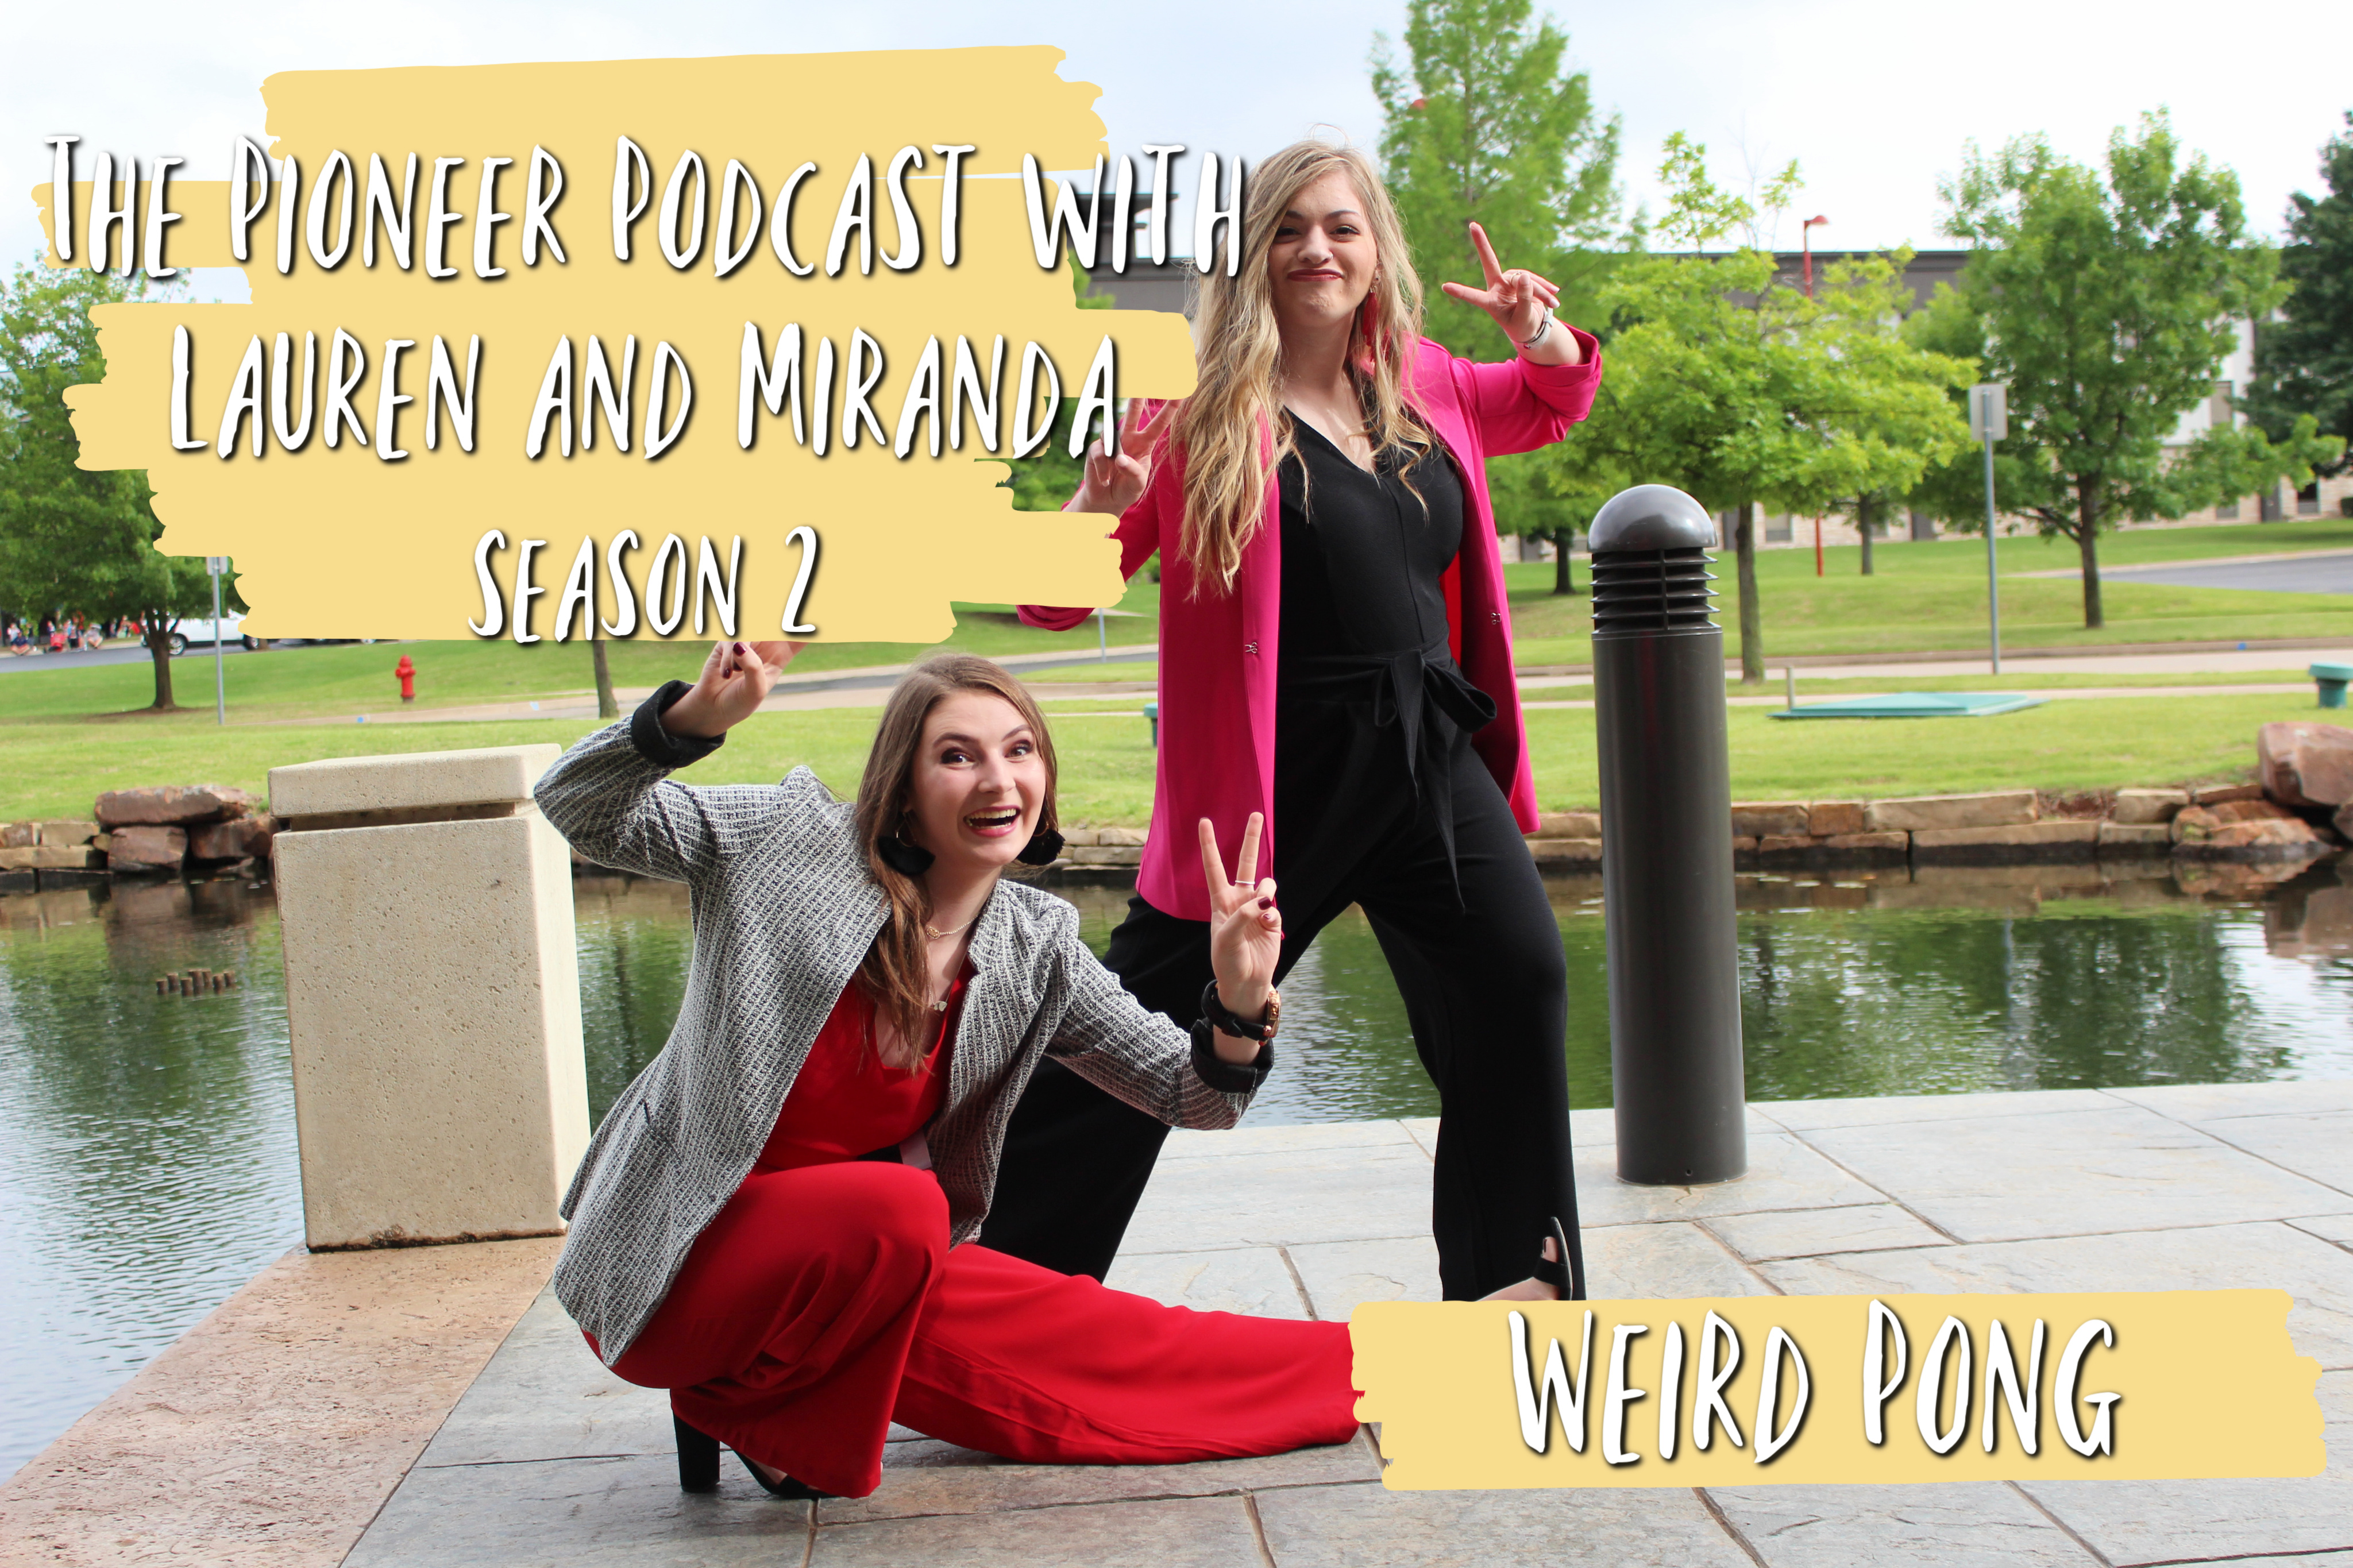 The Pioneer Podcast with Lauren and Miranda: Weird Pong